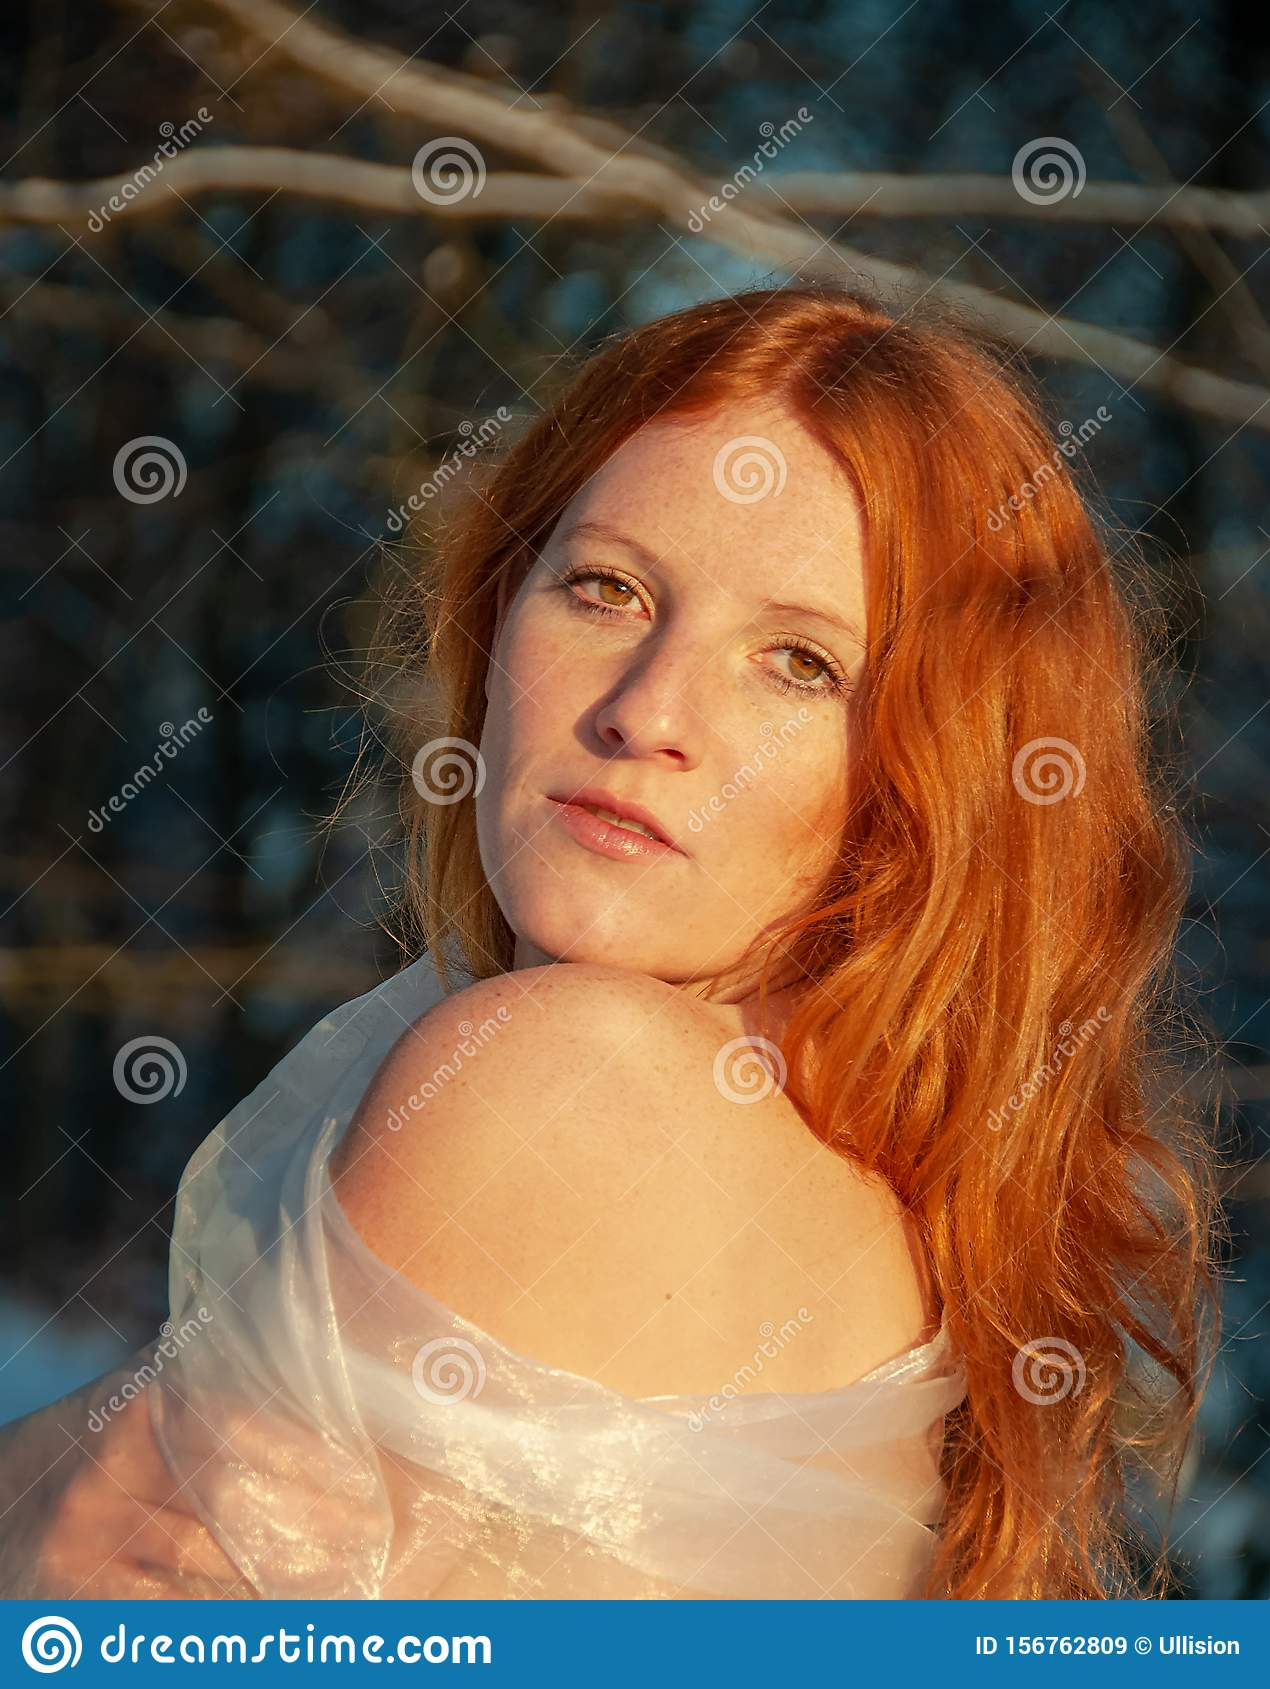 Sensual portrait of red-haired woman under the trees